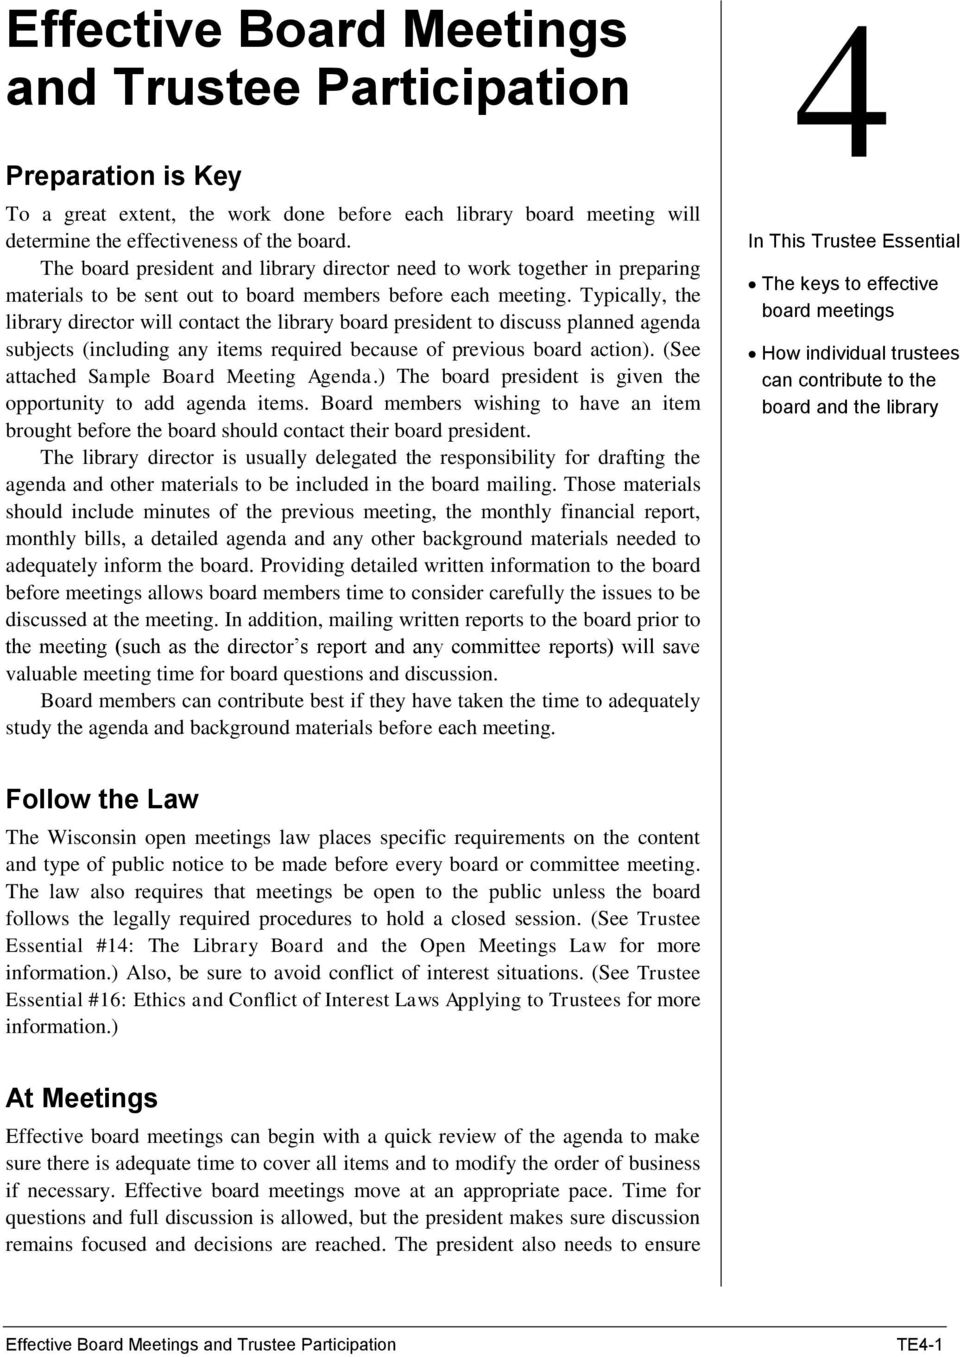 Effective Board Meetings and Trustee Participation - PDF